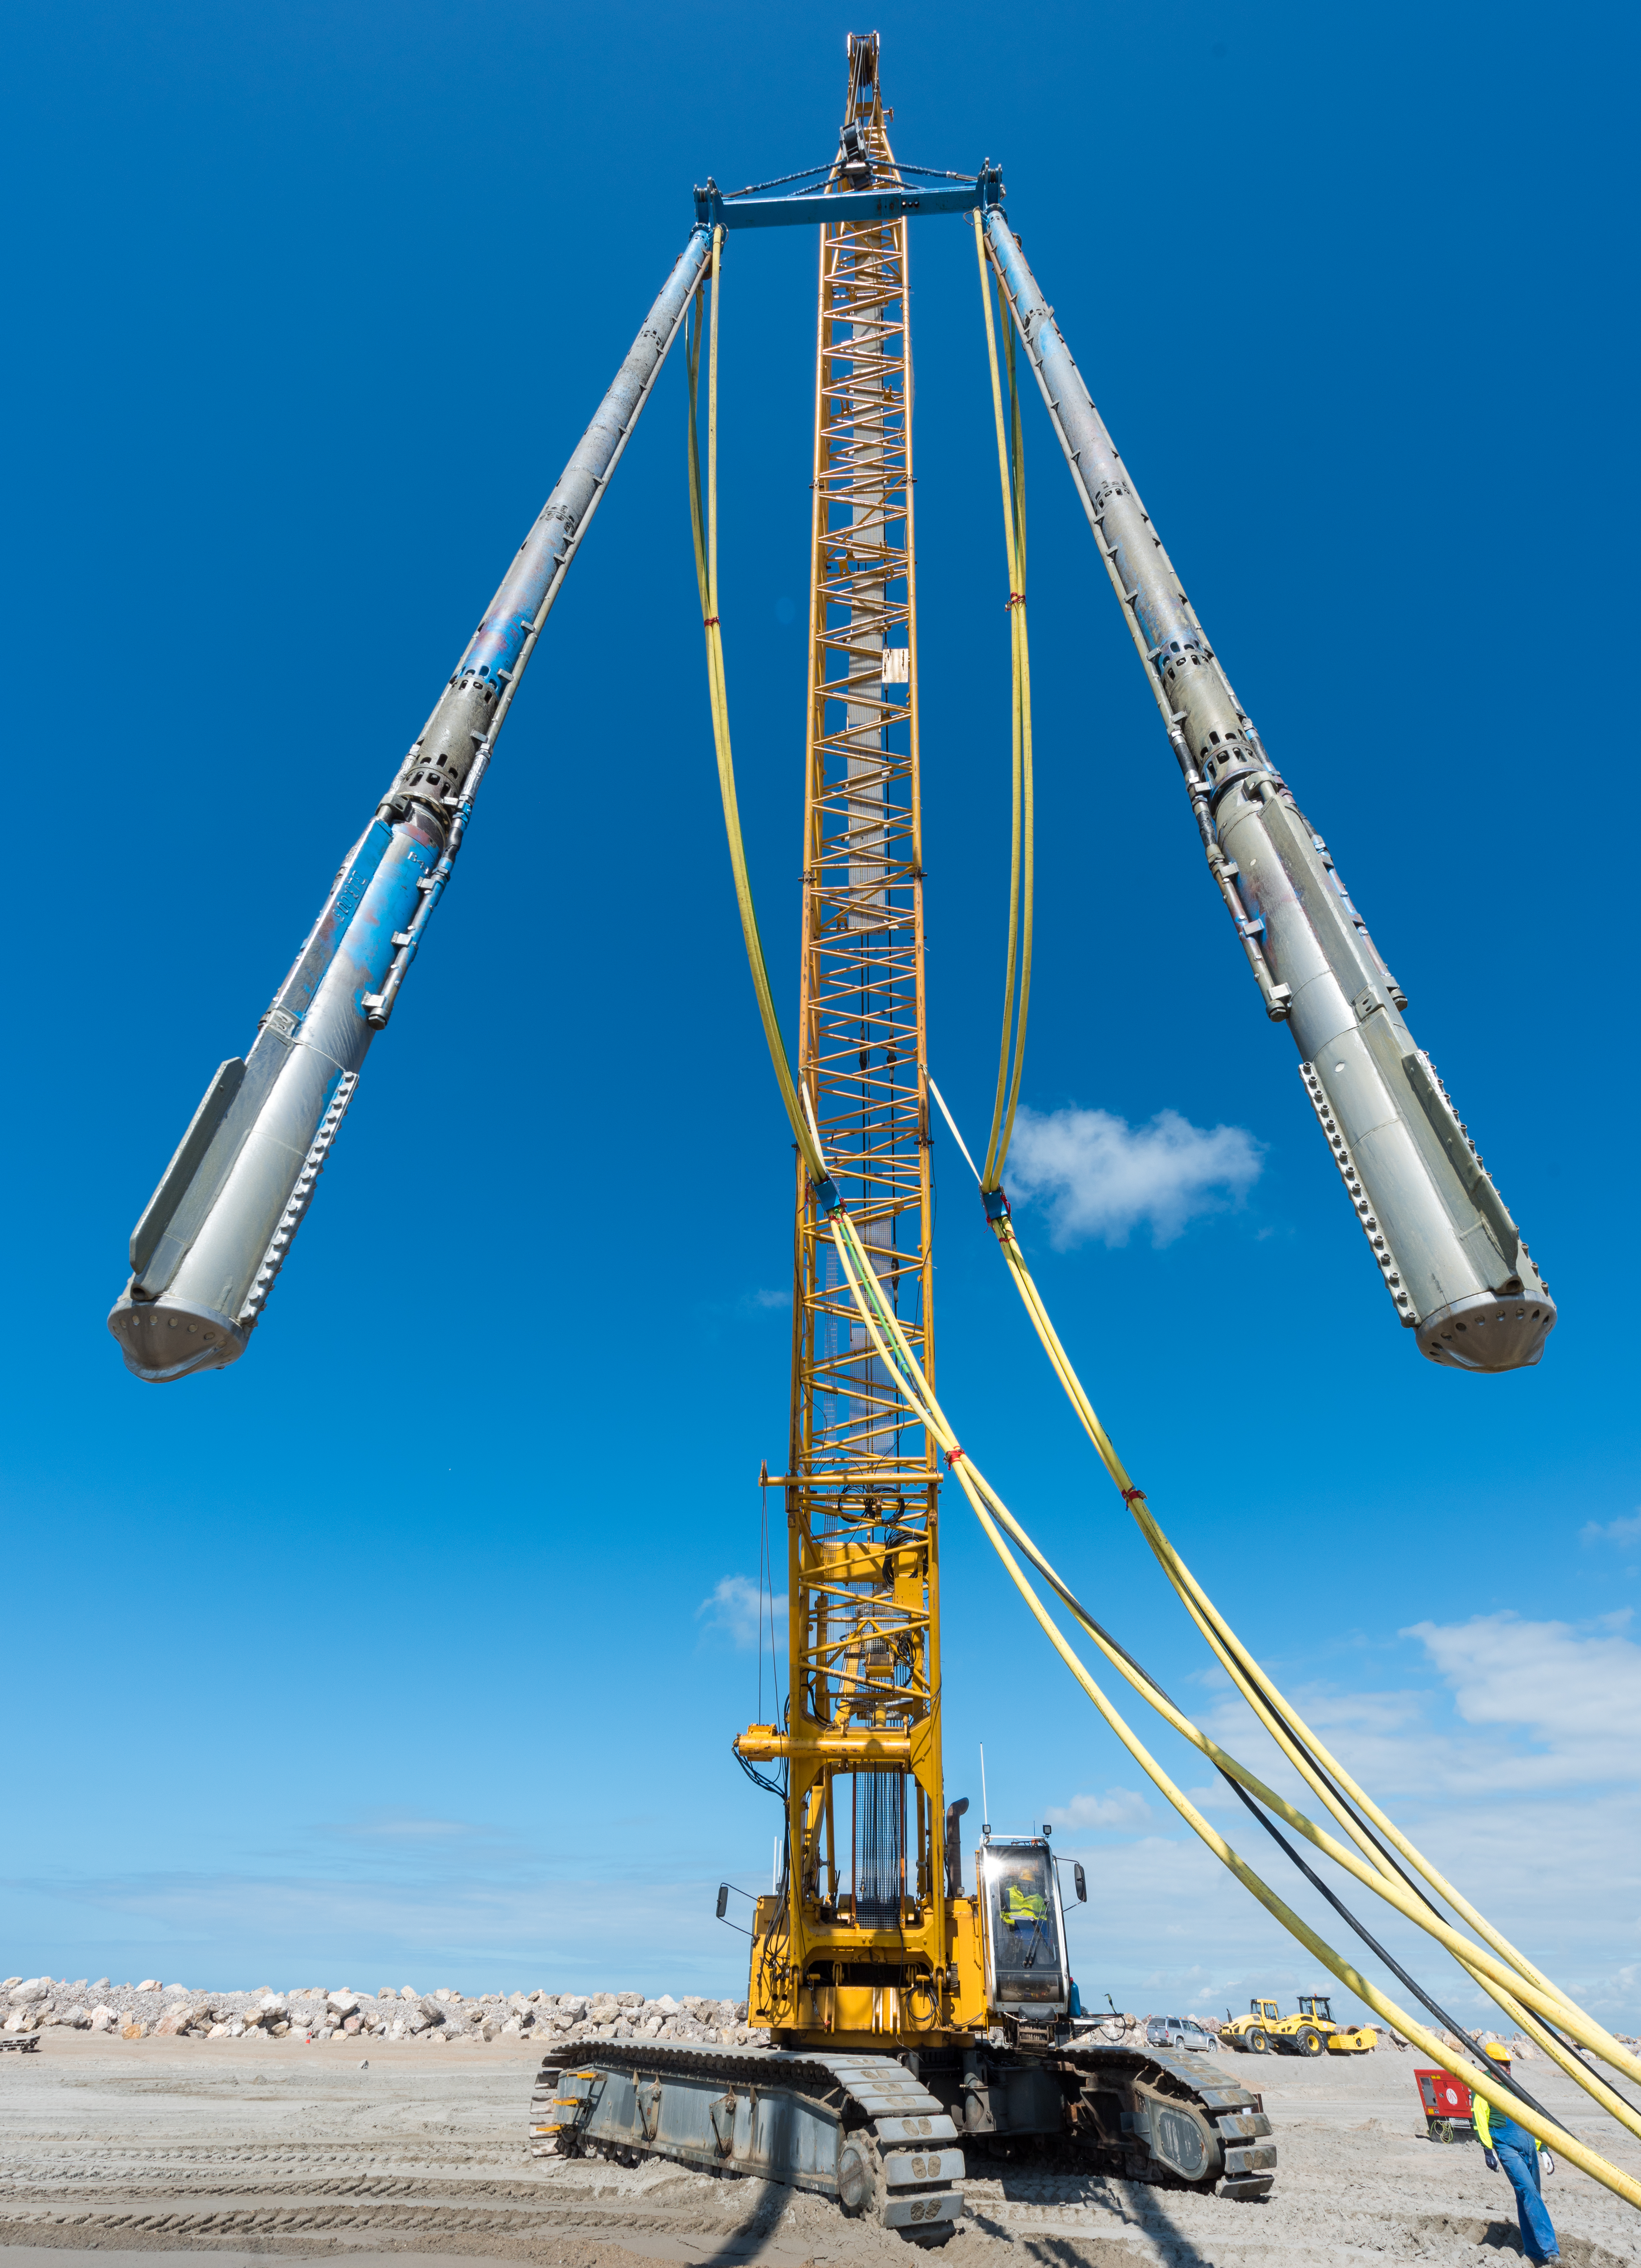 Tandem Rig - wide angle view